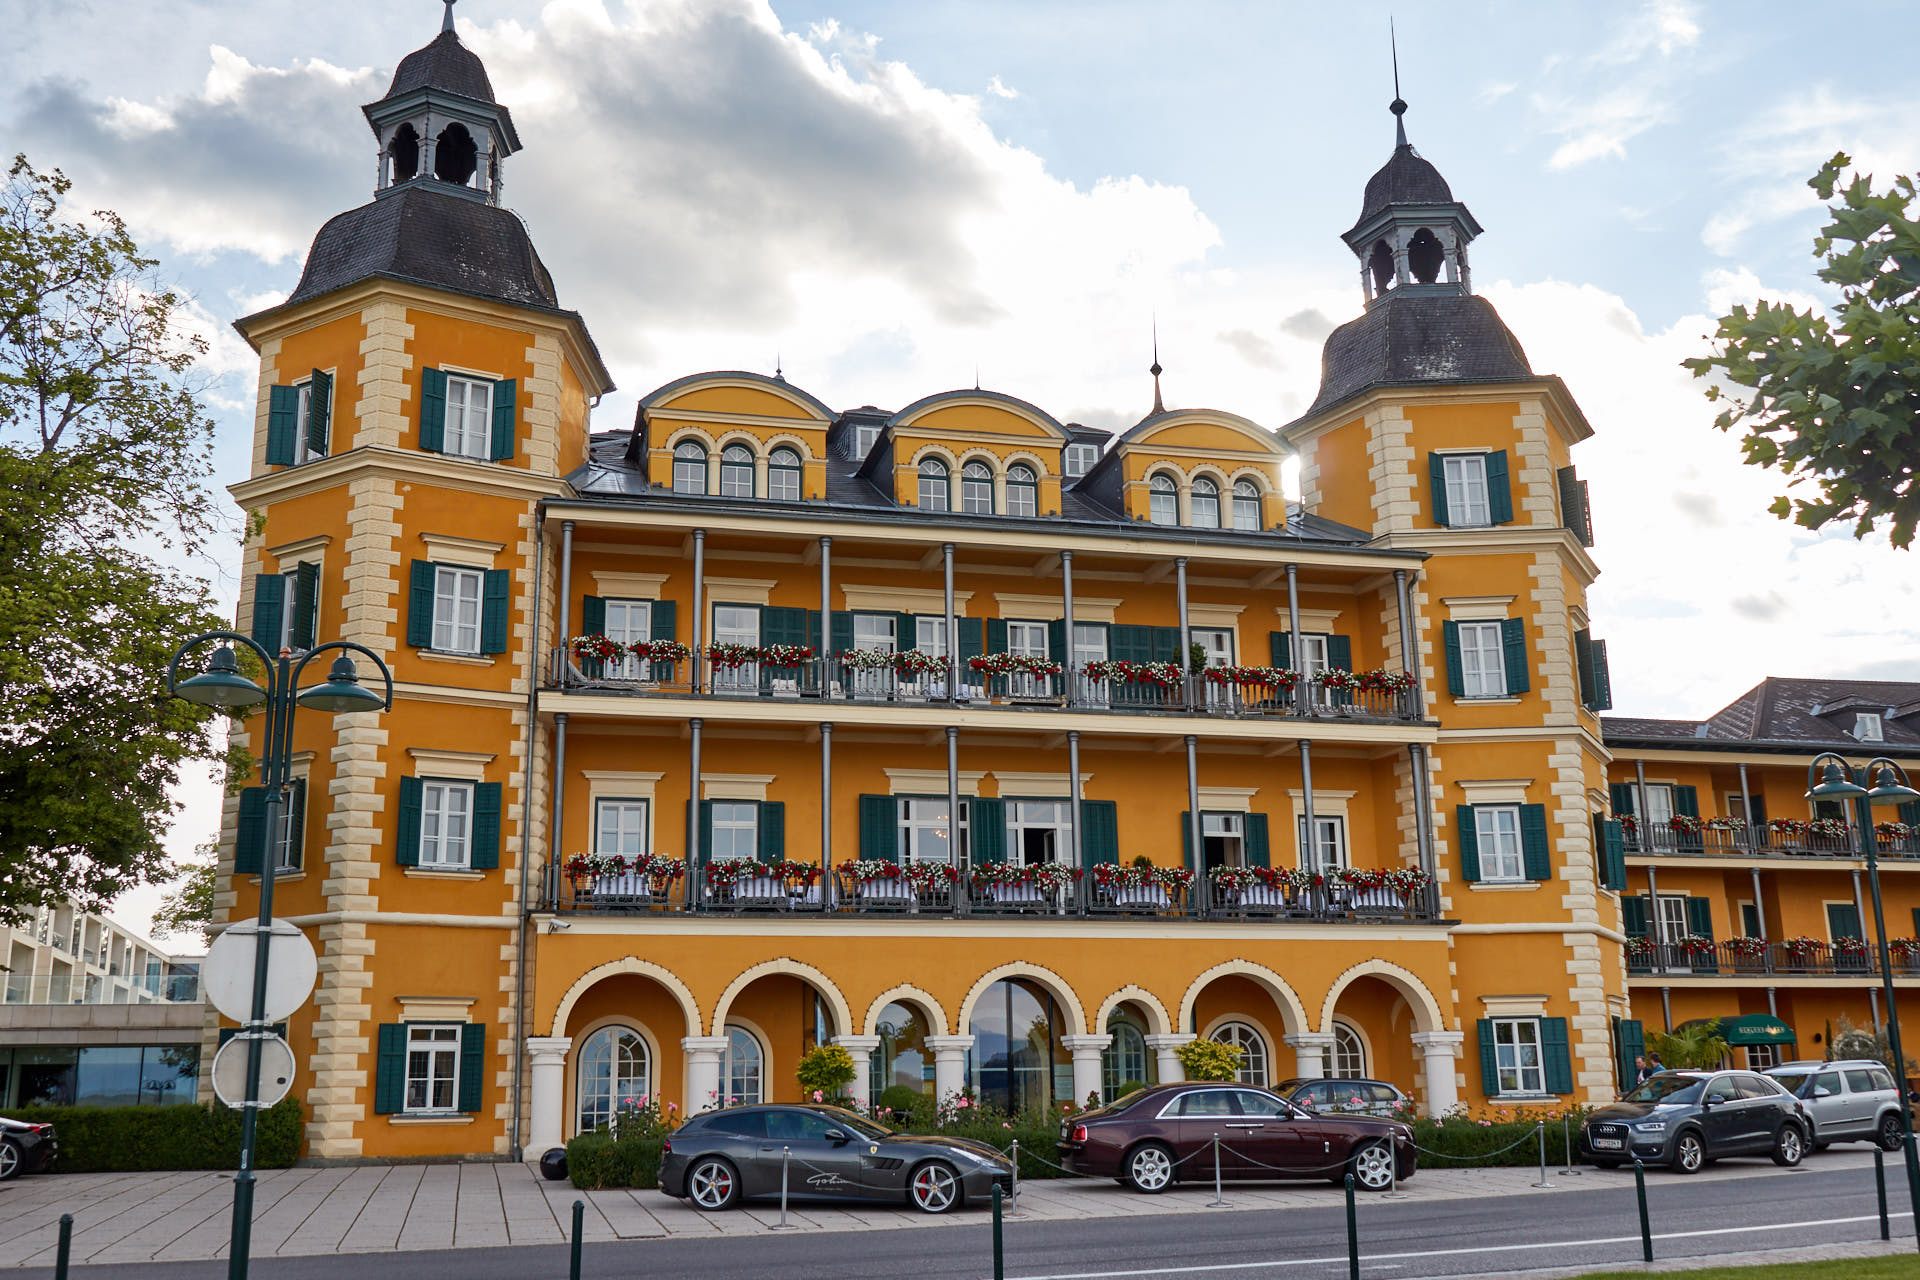 Castle on the Wörthersee